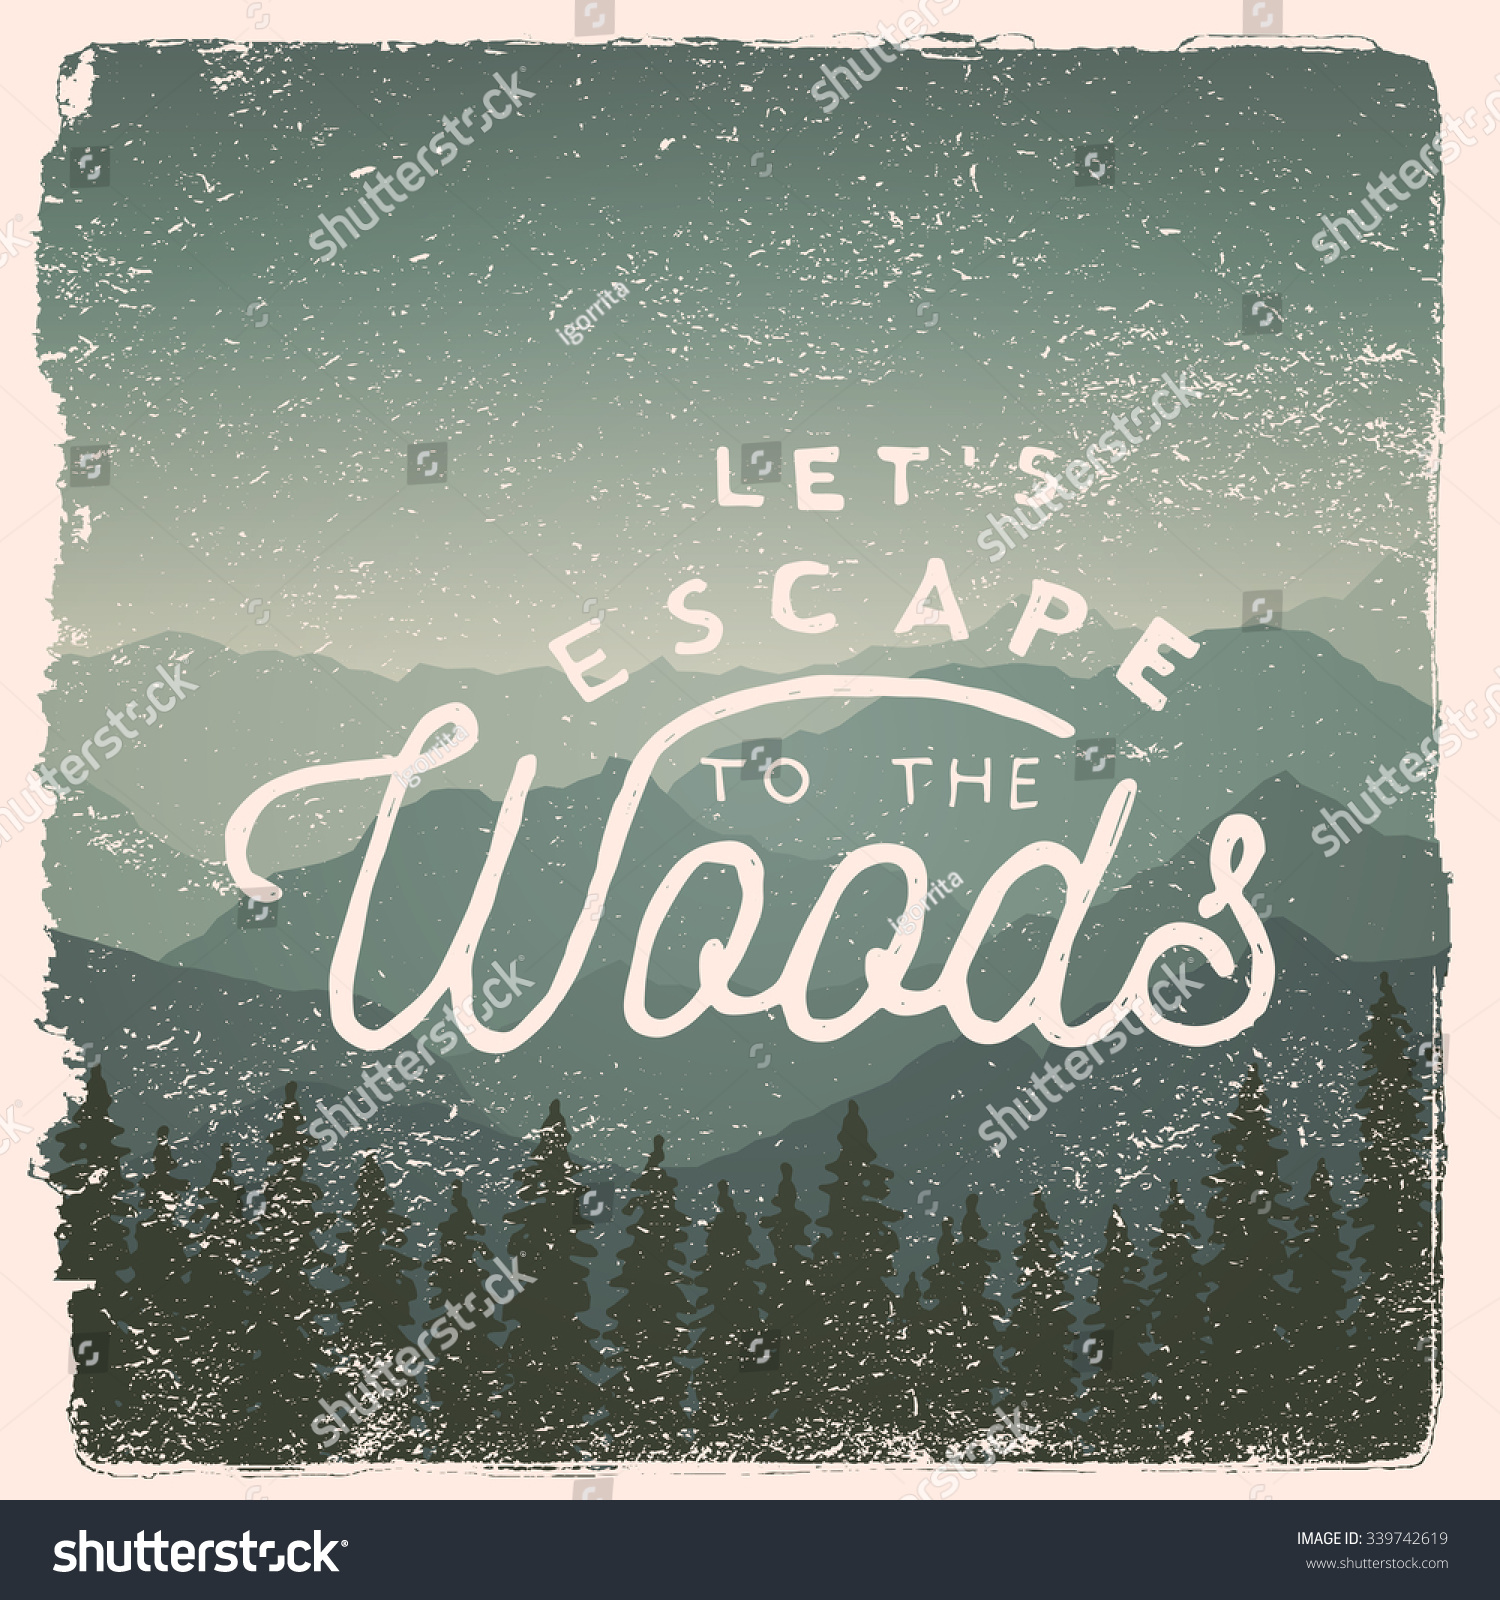 Woods Quotes: Hand Drawn Wilderness, Exploration Quote. Lets Escape To